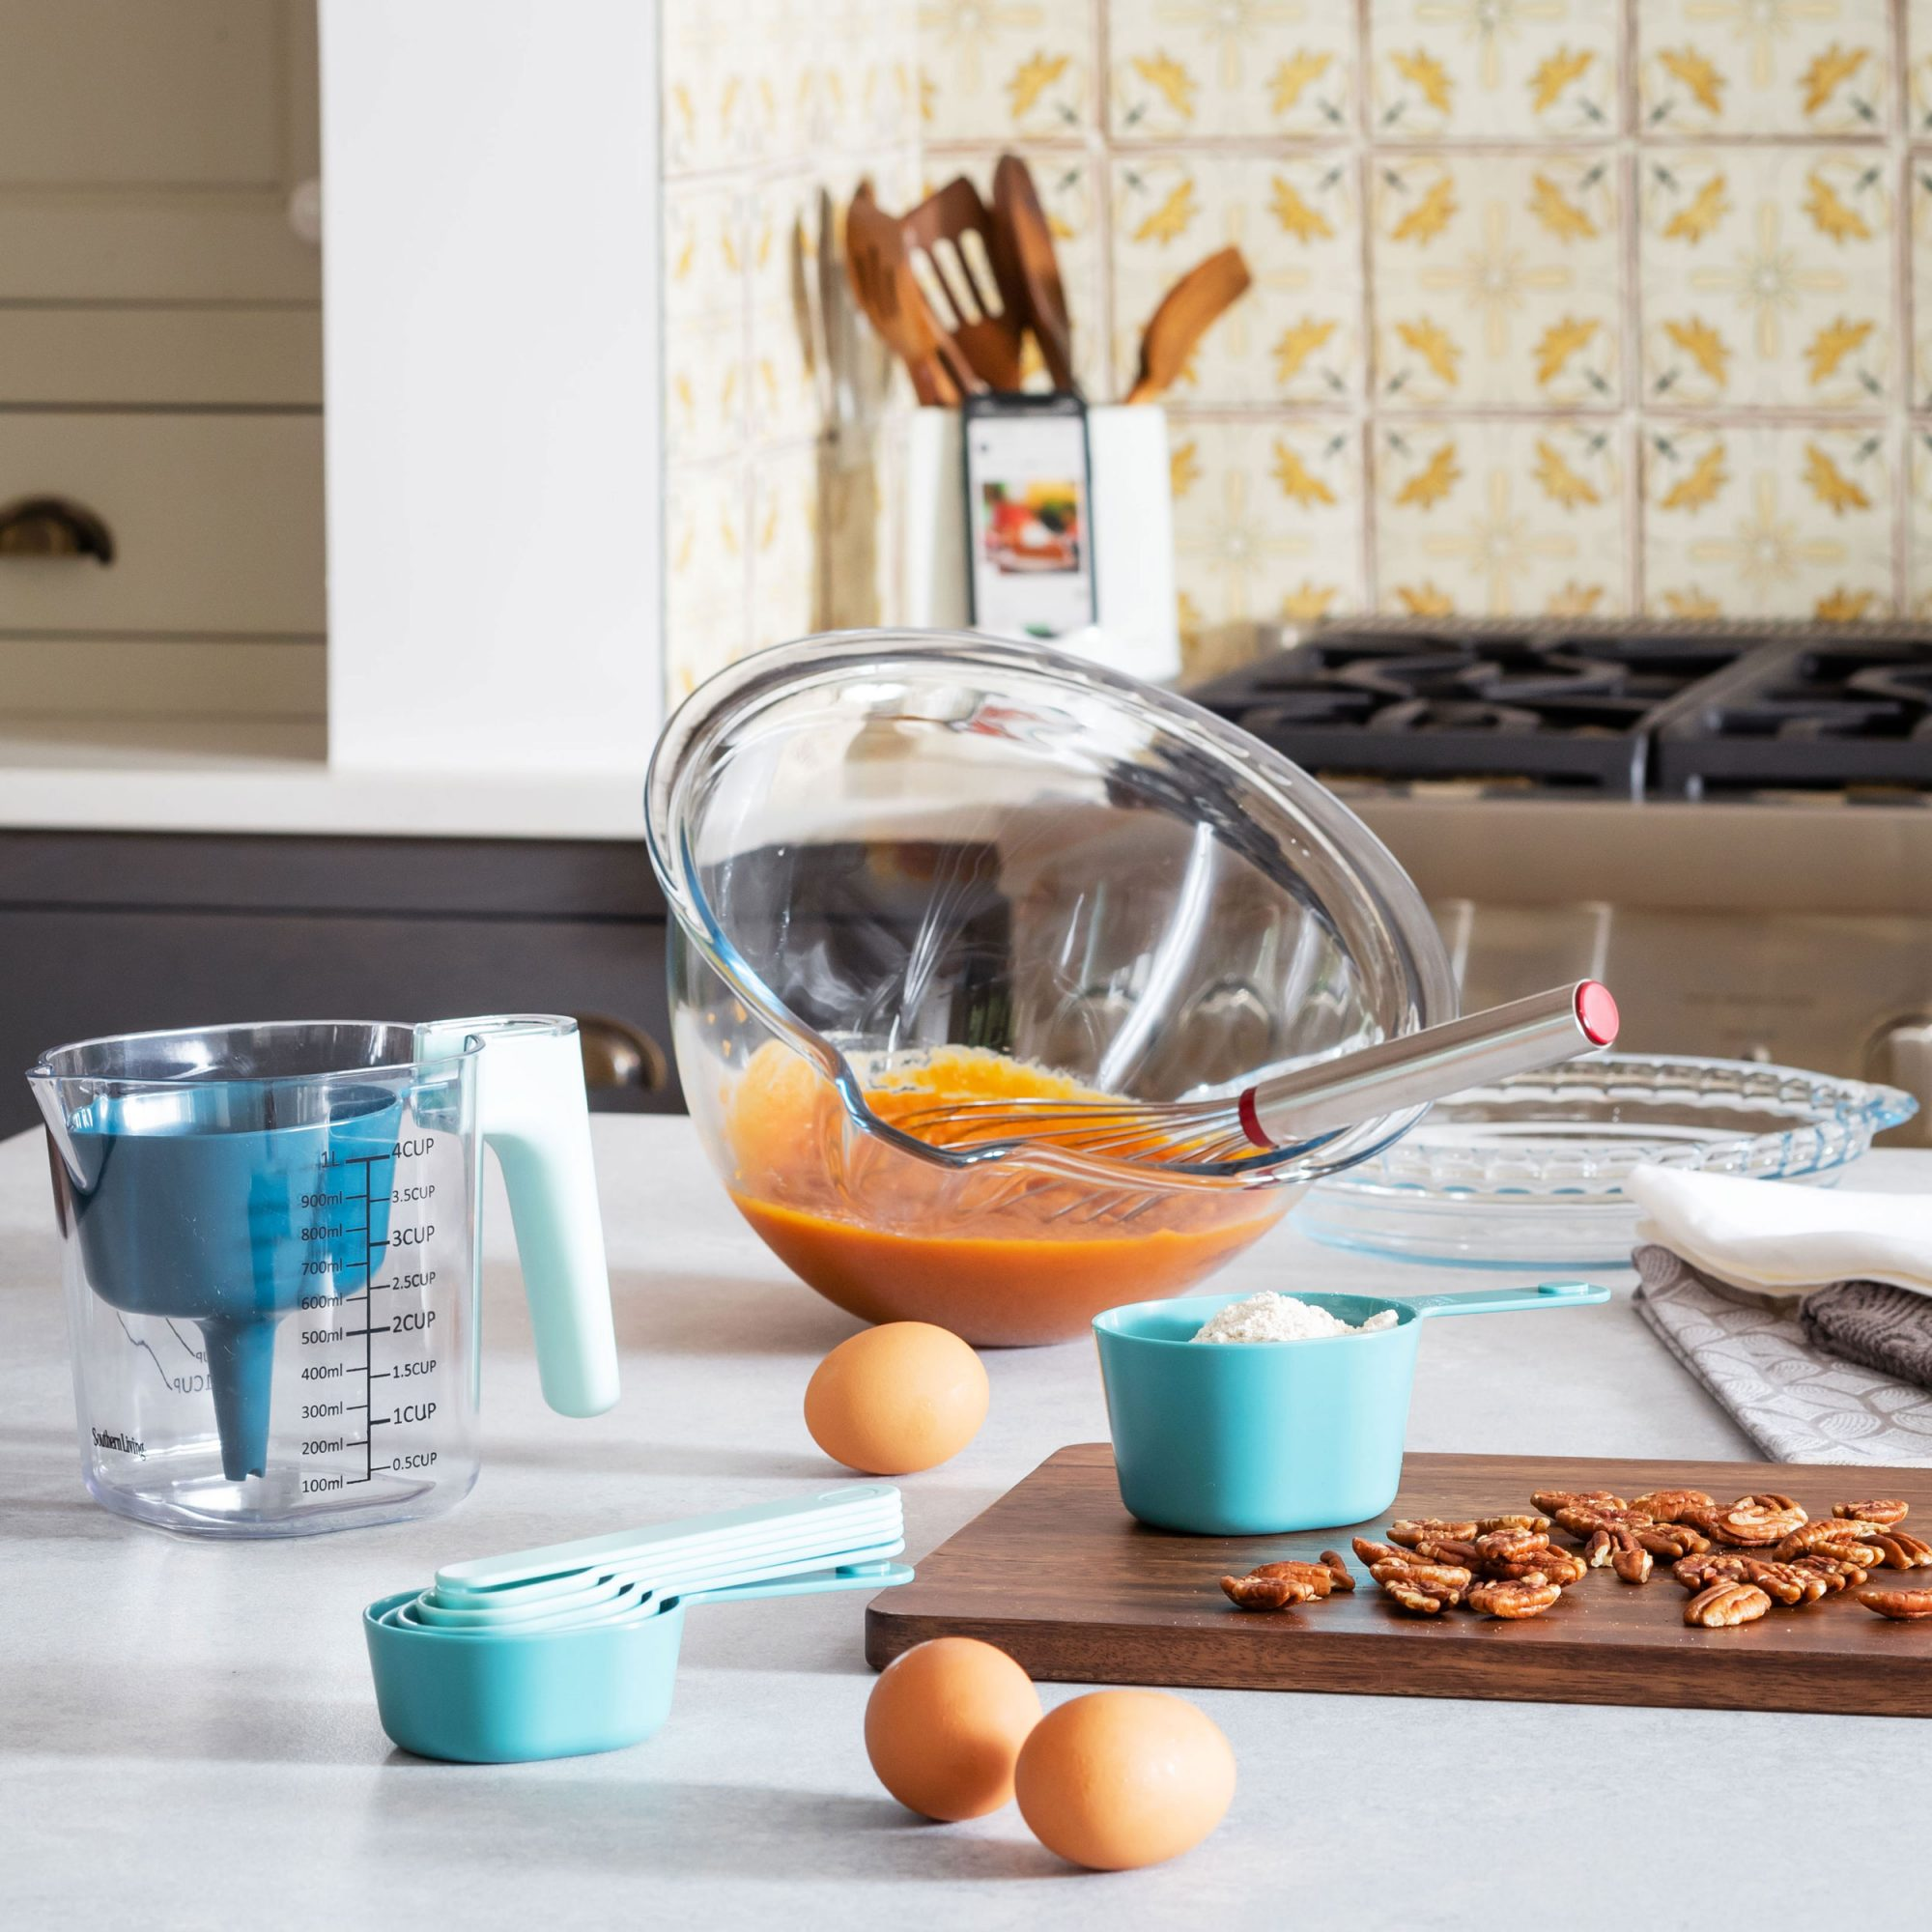 Southern Living Dillards Collection Kitchen Products at 2020 Idea House